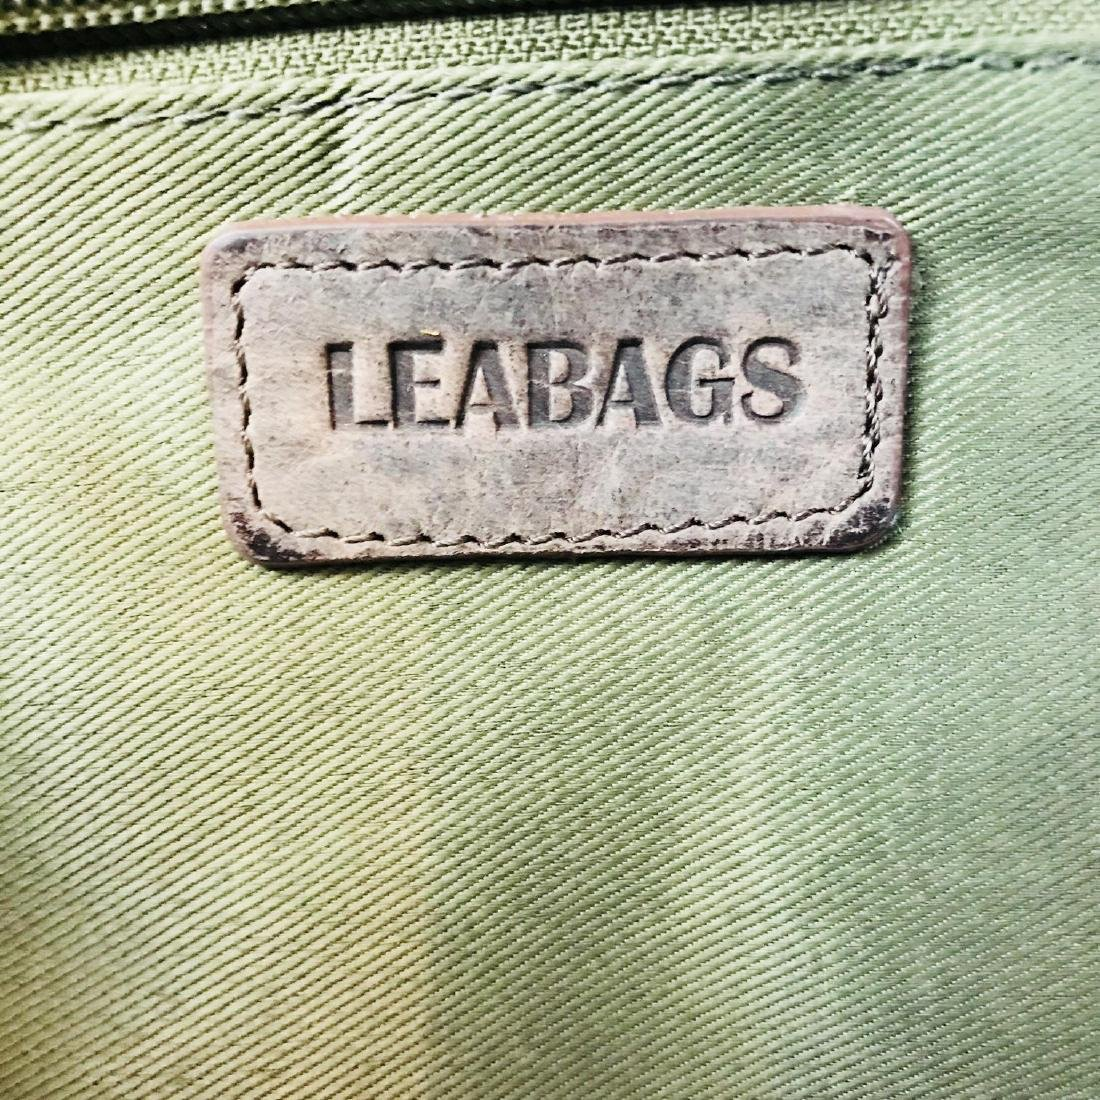 Vintage LEABAGS Leather Shoulder Bag - 6